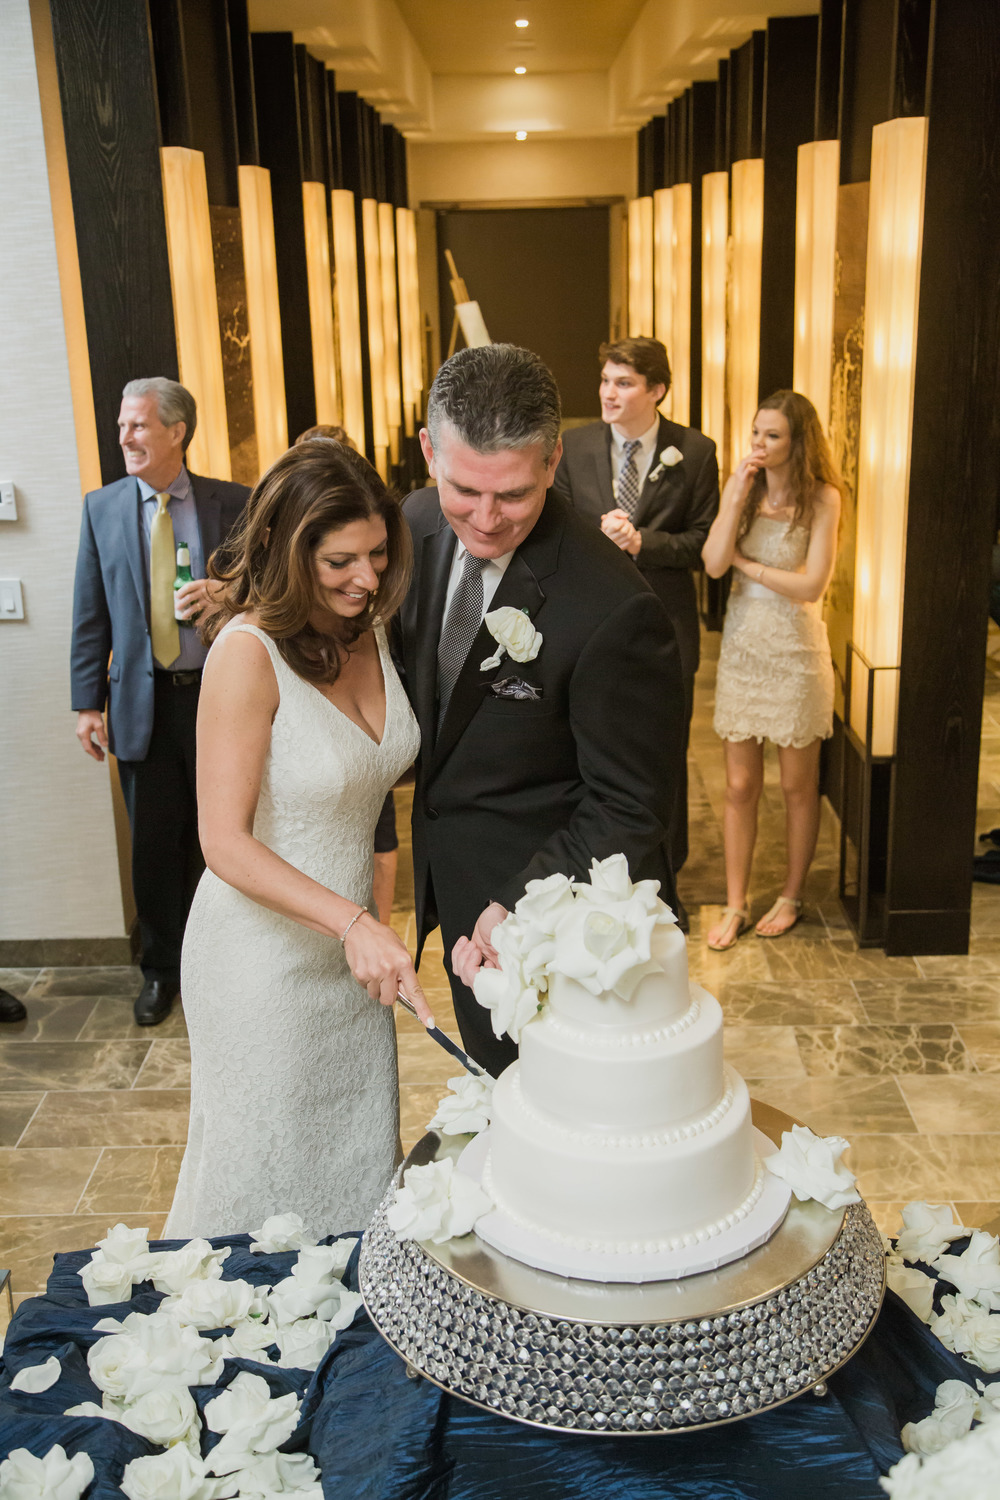 Cutting the cake.  White flowers and white centerpieces on dark blue linens.   Vendor Credits:    Wedding in the   Nobu Villa    |    Las Vegas Wedding Planner   Andrea Eppolito     |    Photography by   Adam Frazier    |    Videography by   Pure Light Creative    |    Floral and Decor by   Destinations by Design    |  Lighting by LED Unplugged  |    Music by   DJ Mike Fox